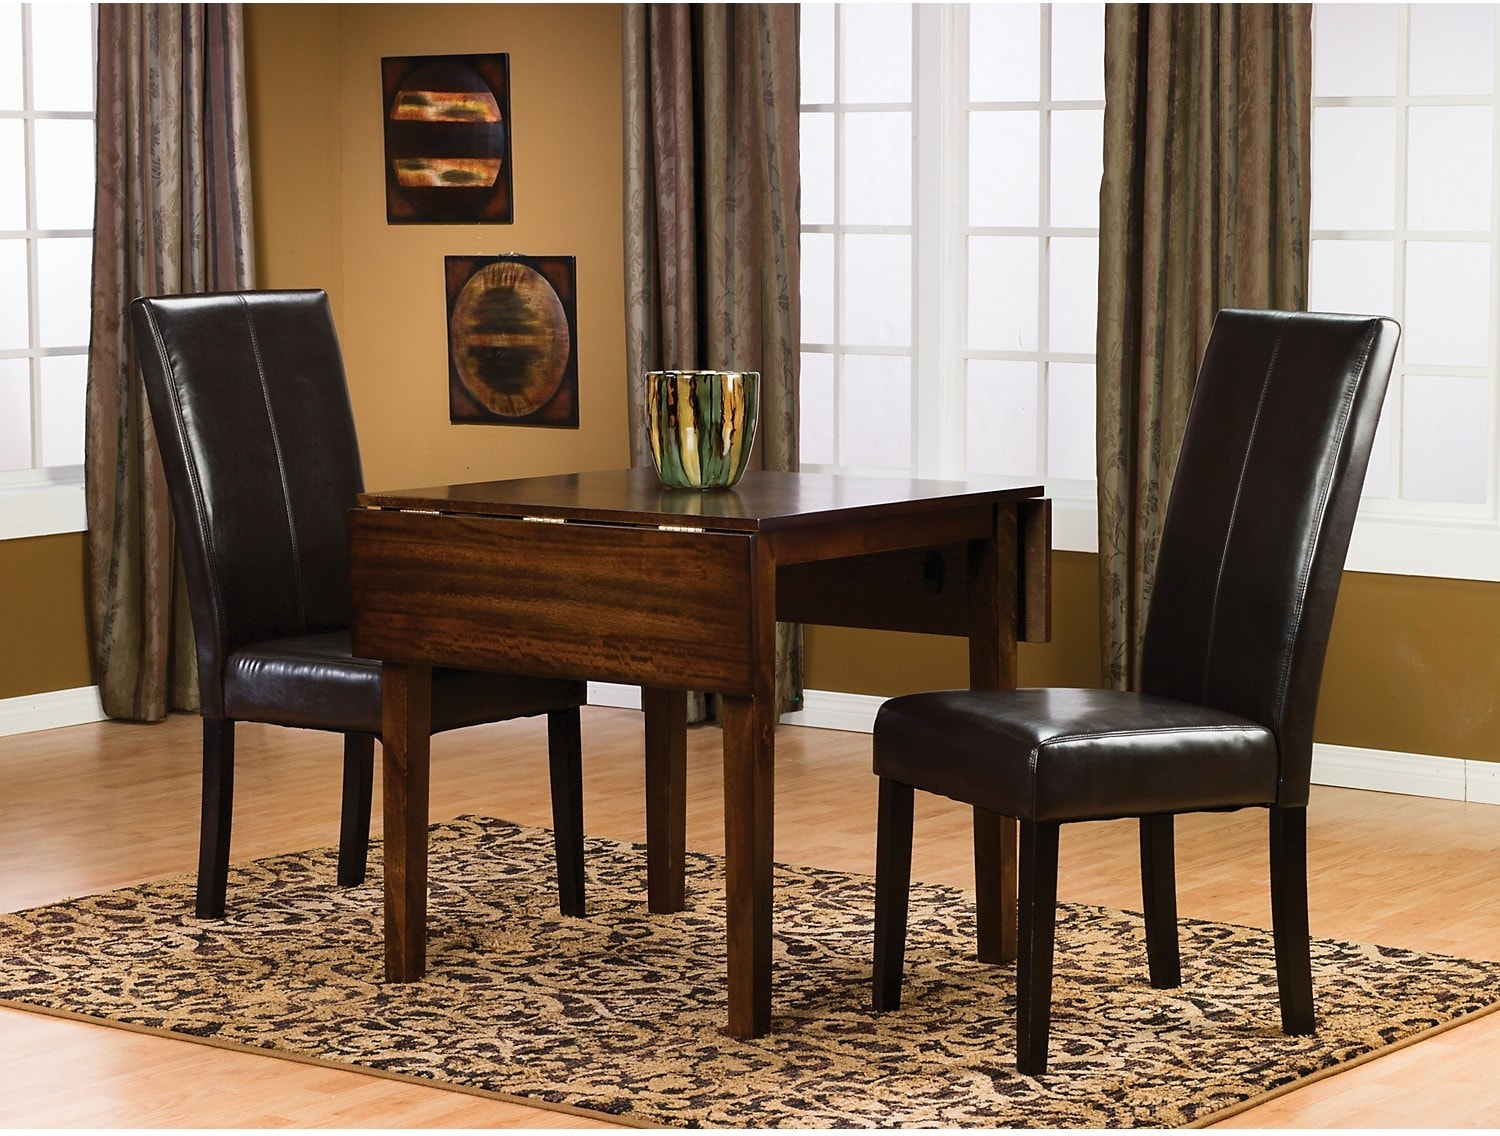 Adara 3-Piece Square Table Dining Package w/ Brown Chairs